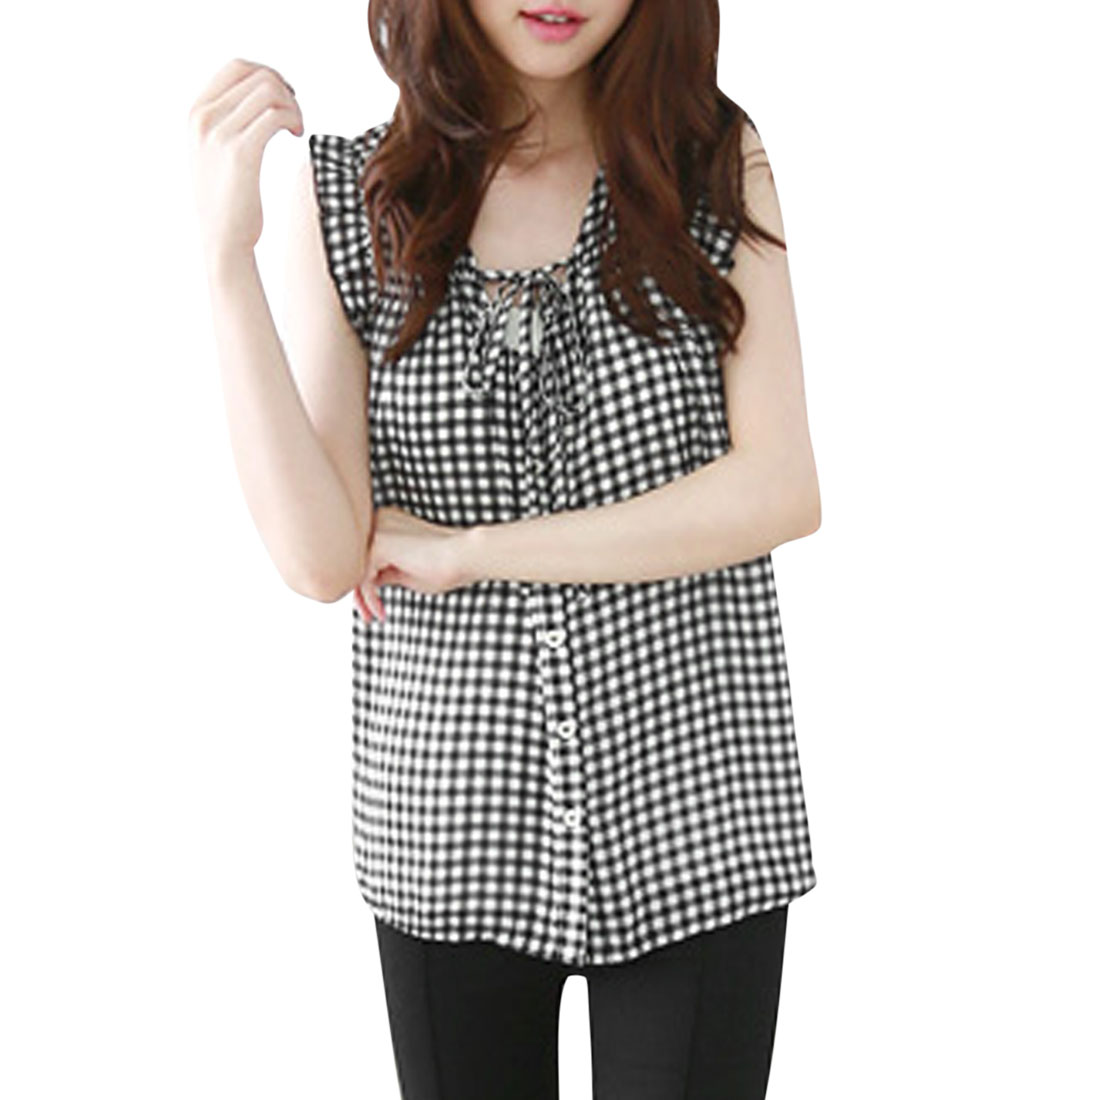 Women's Plaids Button Down Ruffled Sleeve Lace-up Front Top Black White XS